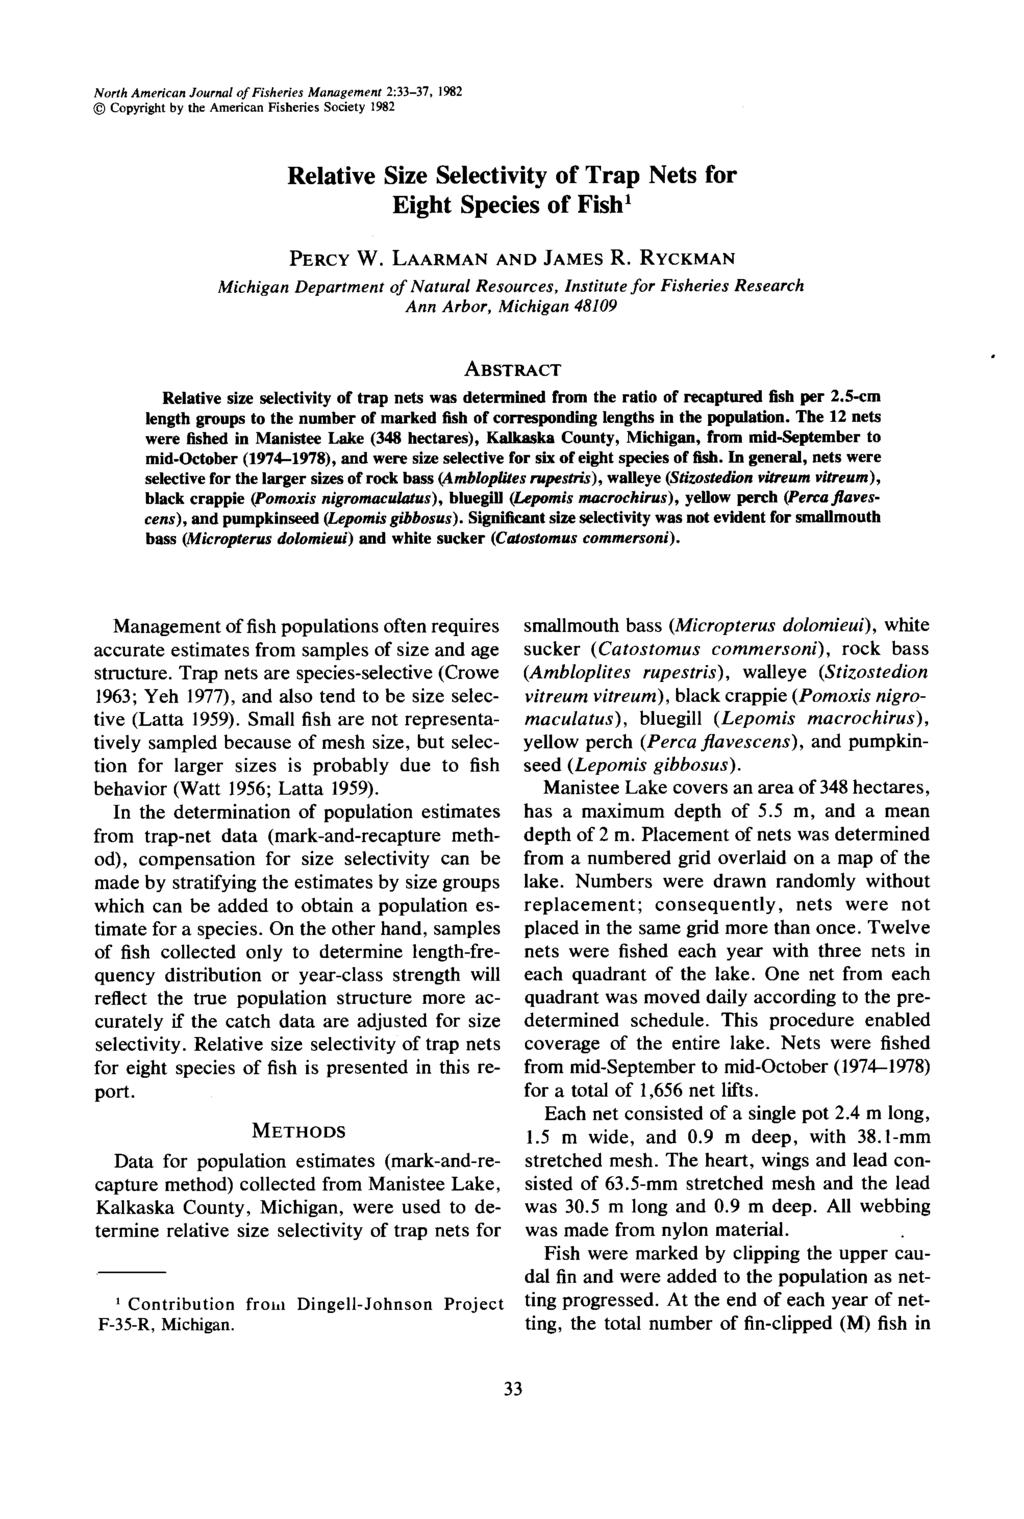 North American Journal of Fisheries Management 2:33-37, 1982 Copyright by the American Fisheries Society 1982 Relative Size Selectivity of Trap Nets for Eight Species of Fish' PERCY W.